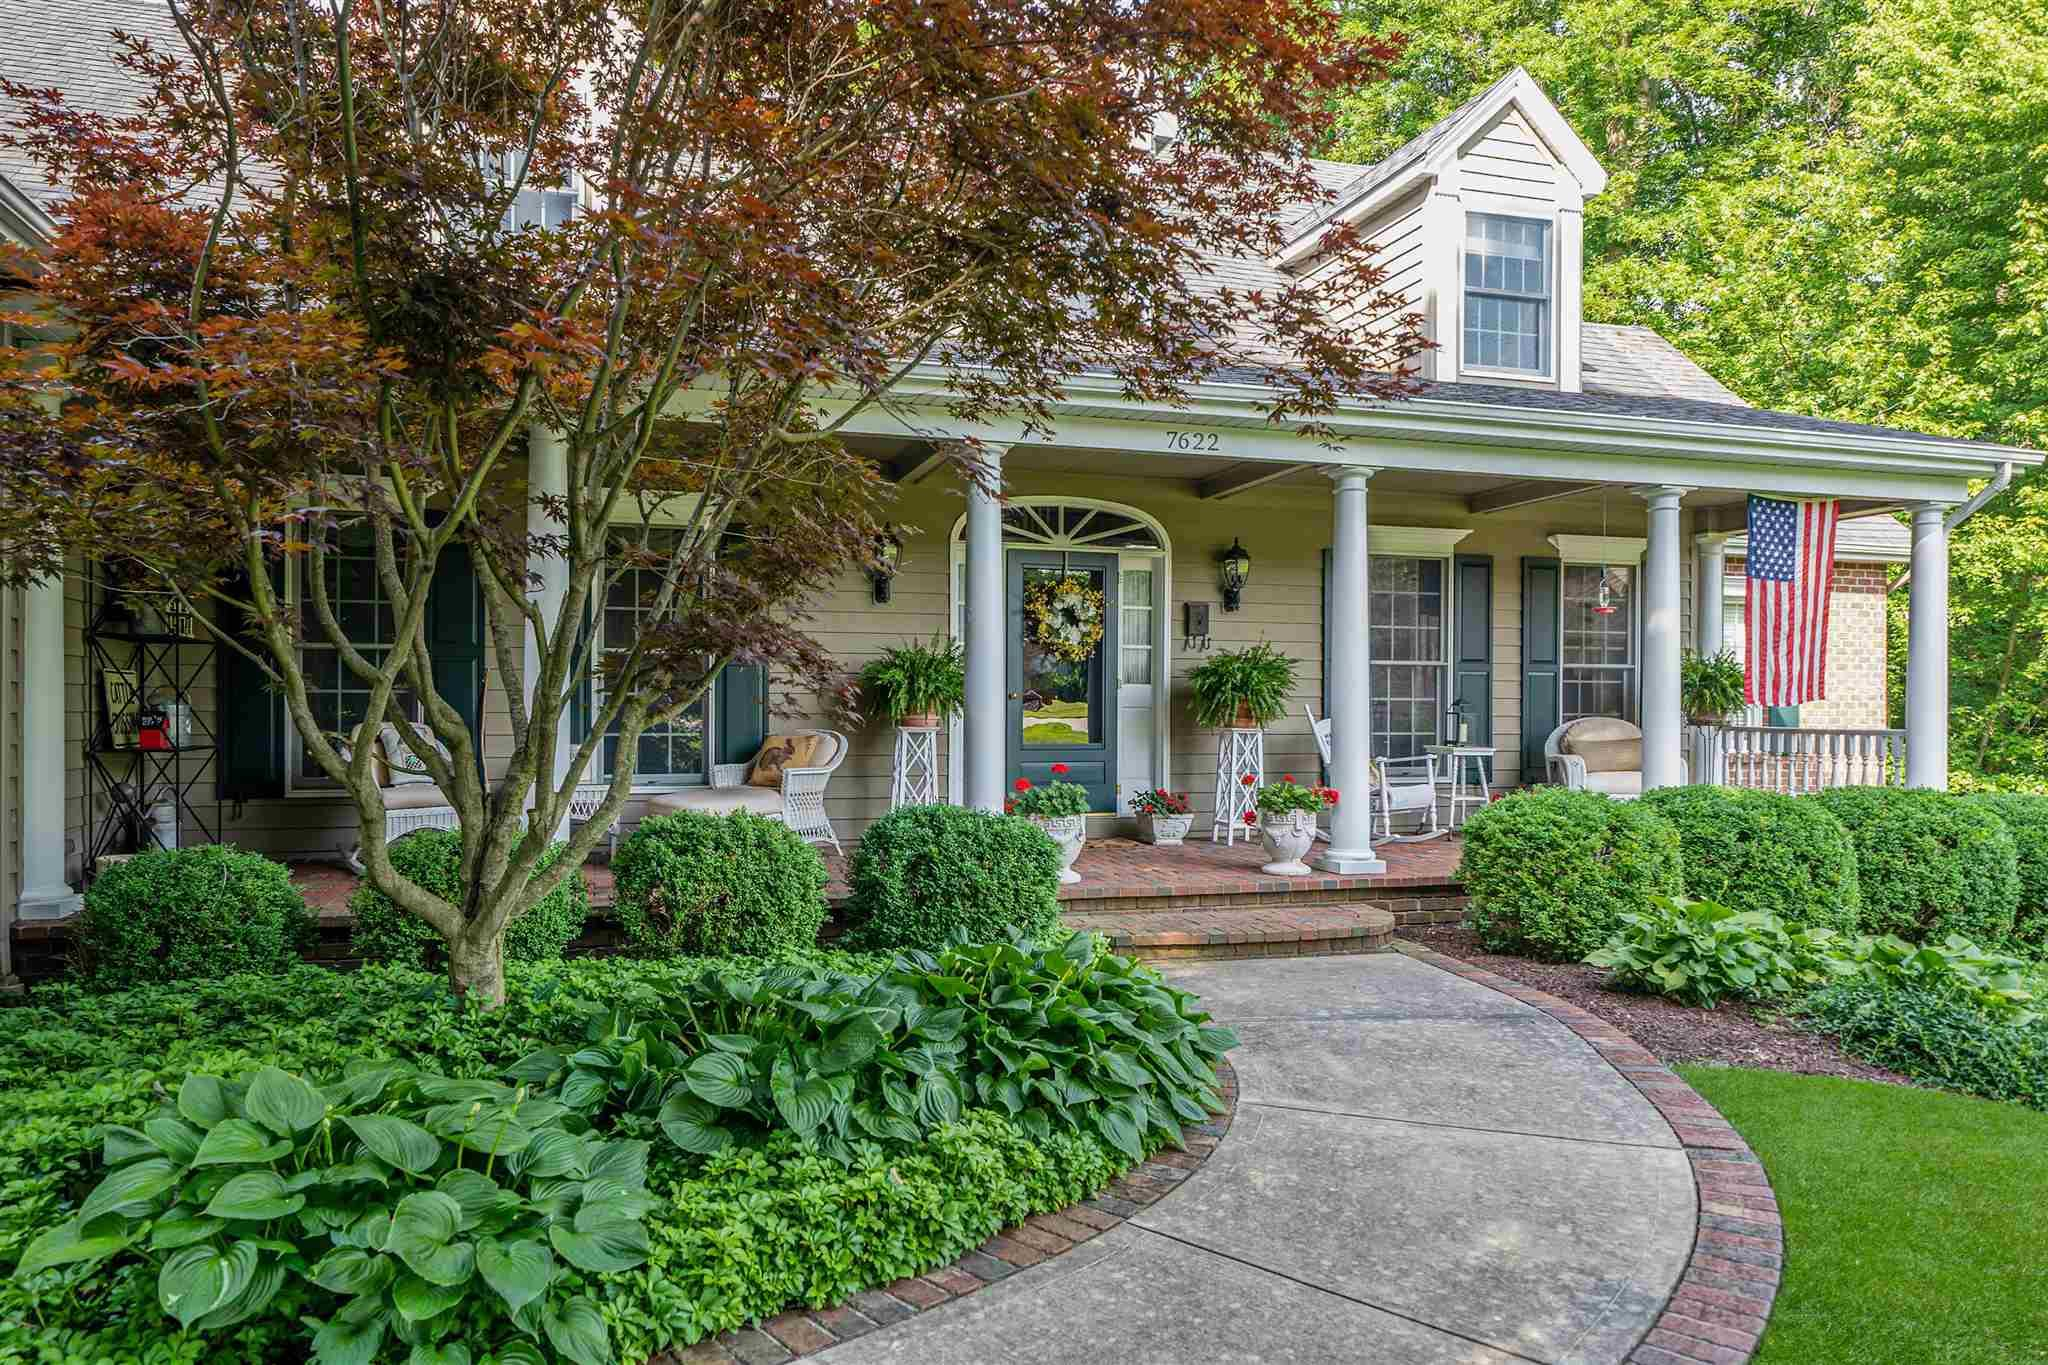 """Peaceful private country feel in a gorgeous SW neighborhood. Located on 1.2 acres yet close to shopping, SWAC schools, hospitals, I-69 & FW! The covered front porch welcomes you into this quality Byall custom-built beauty. Over 3800 sq ft above grade with an additional 2475 sq ft below. The upgraded traditional floor plan means you enjoy a 4 season room and a screened porch. Gourmet kitchen with both a built-in butler's pantry and a kitchen hutch. Large island with prep sink opens to the hearth room the 4 season room. Main floor primary suite with marble countertops in the ensuite, jetted tub and a shower built for two! Upstairs there are 2 bedrooms, each with its own ensuite and a large bonus finished attic space off bdrm 3 that has a separate staircase opening into the kitchen/hearth. The lower level boats plenty of room for entertaining, a large guest room, full bath and loads of storage. 4 masonry fireplaces, coffered ceilings, crown & base molding galore and French doors grace this lovely home. Not a detail was overlooked! Constructed with 6"""" walls and I-beams."""